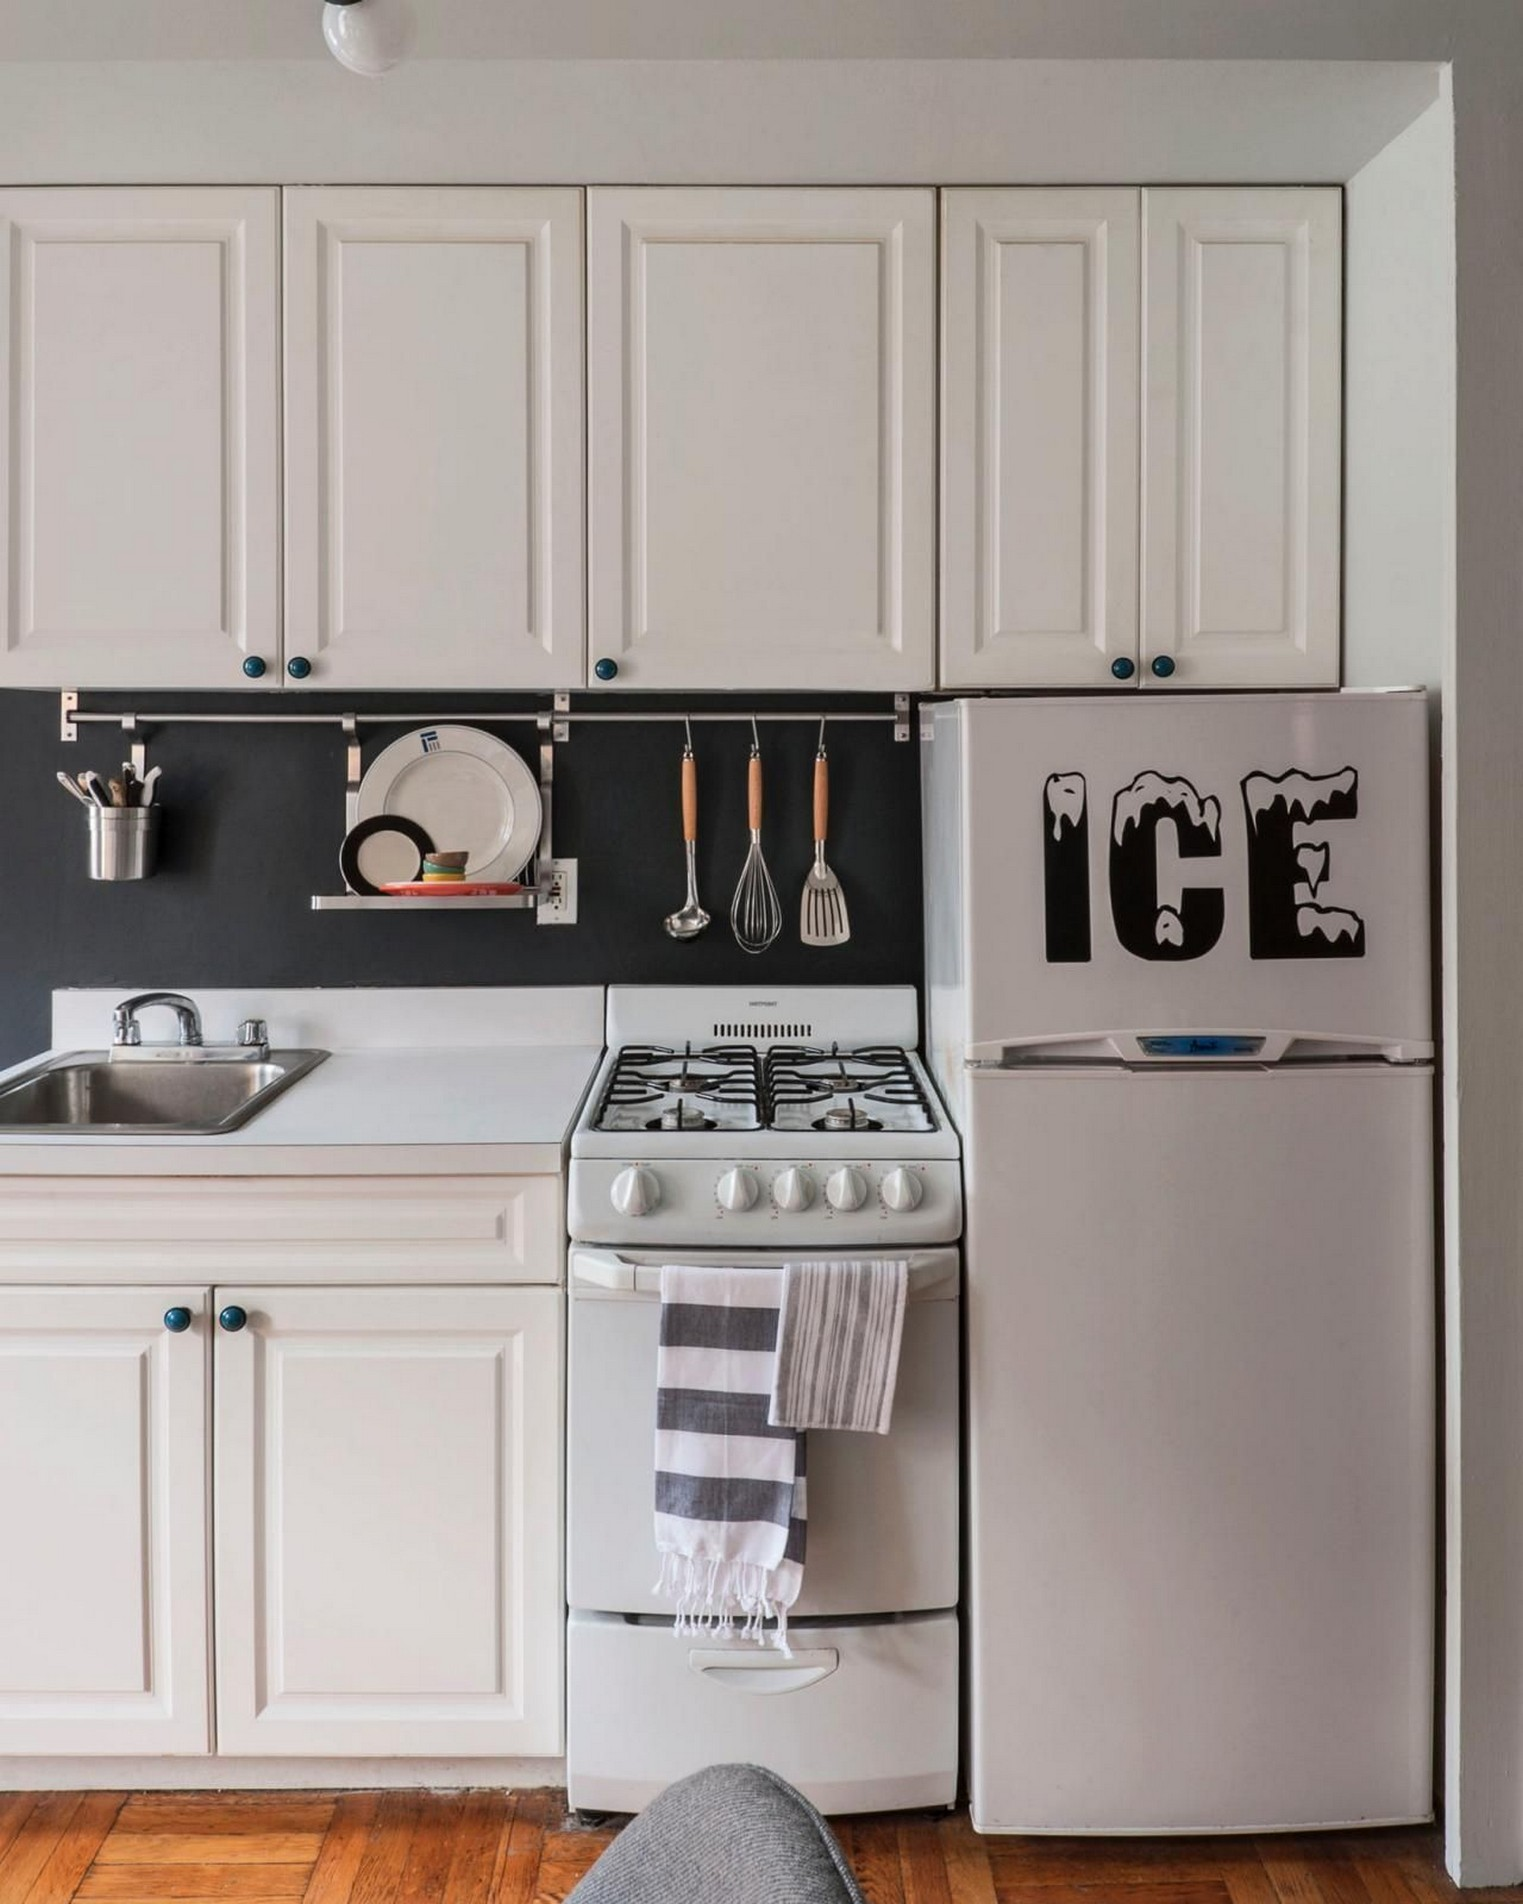 86 Some Small Kitchen Ideas To Help You Do Up Your Kitchen 25